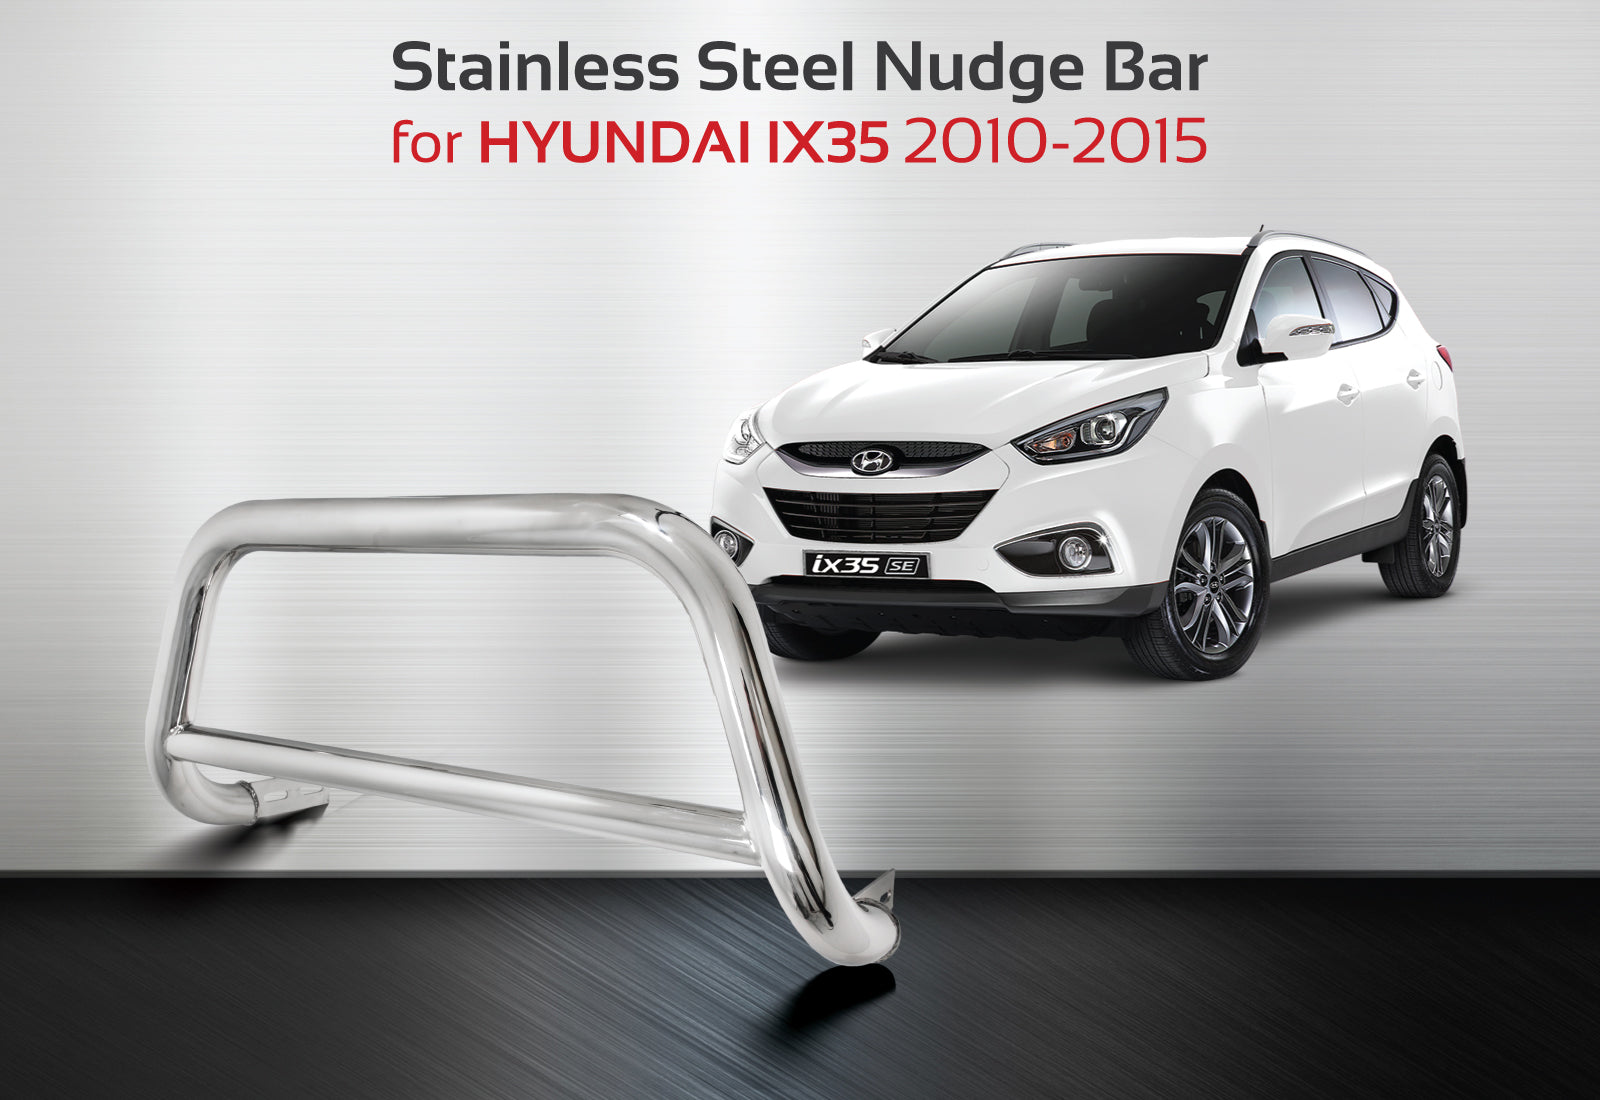 chrome-stainless-steel-nudge-bar-hyundai-ix35_RVQ9QUECYBNC.jpg